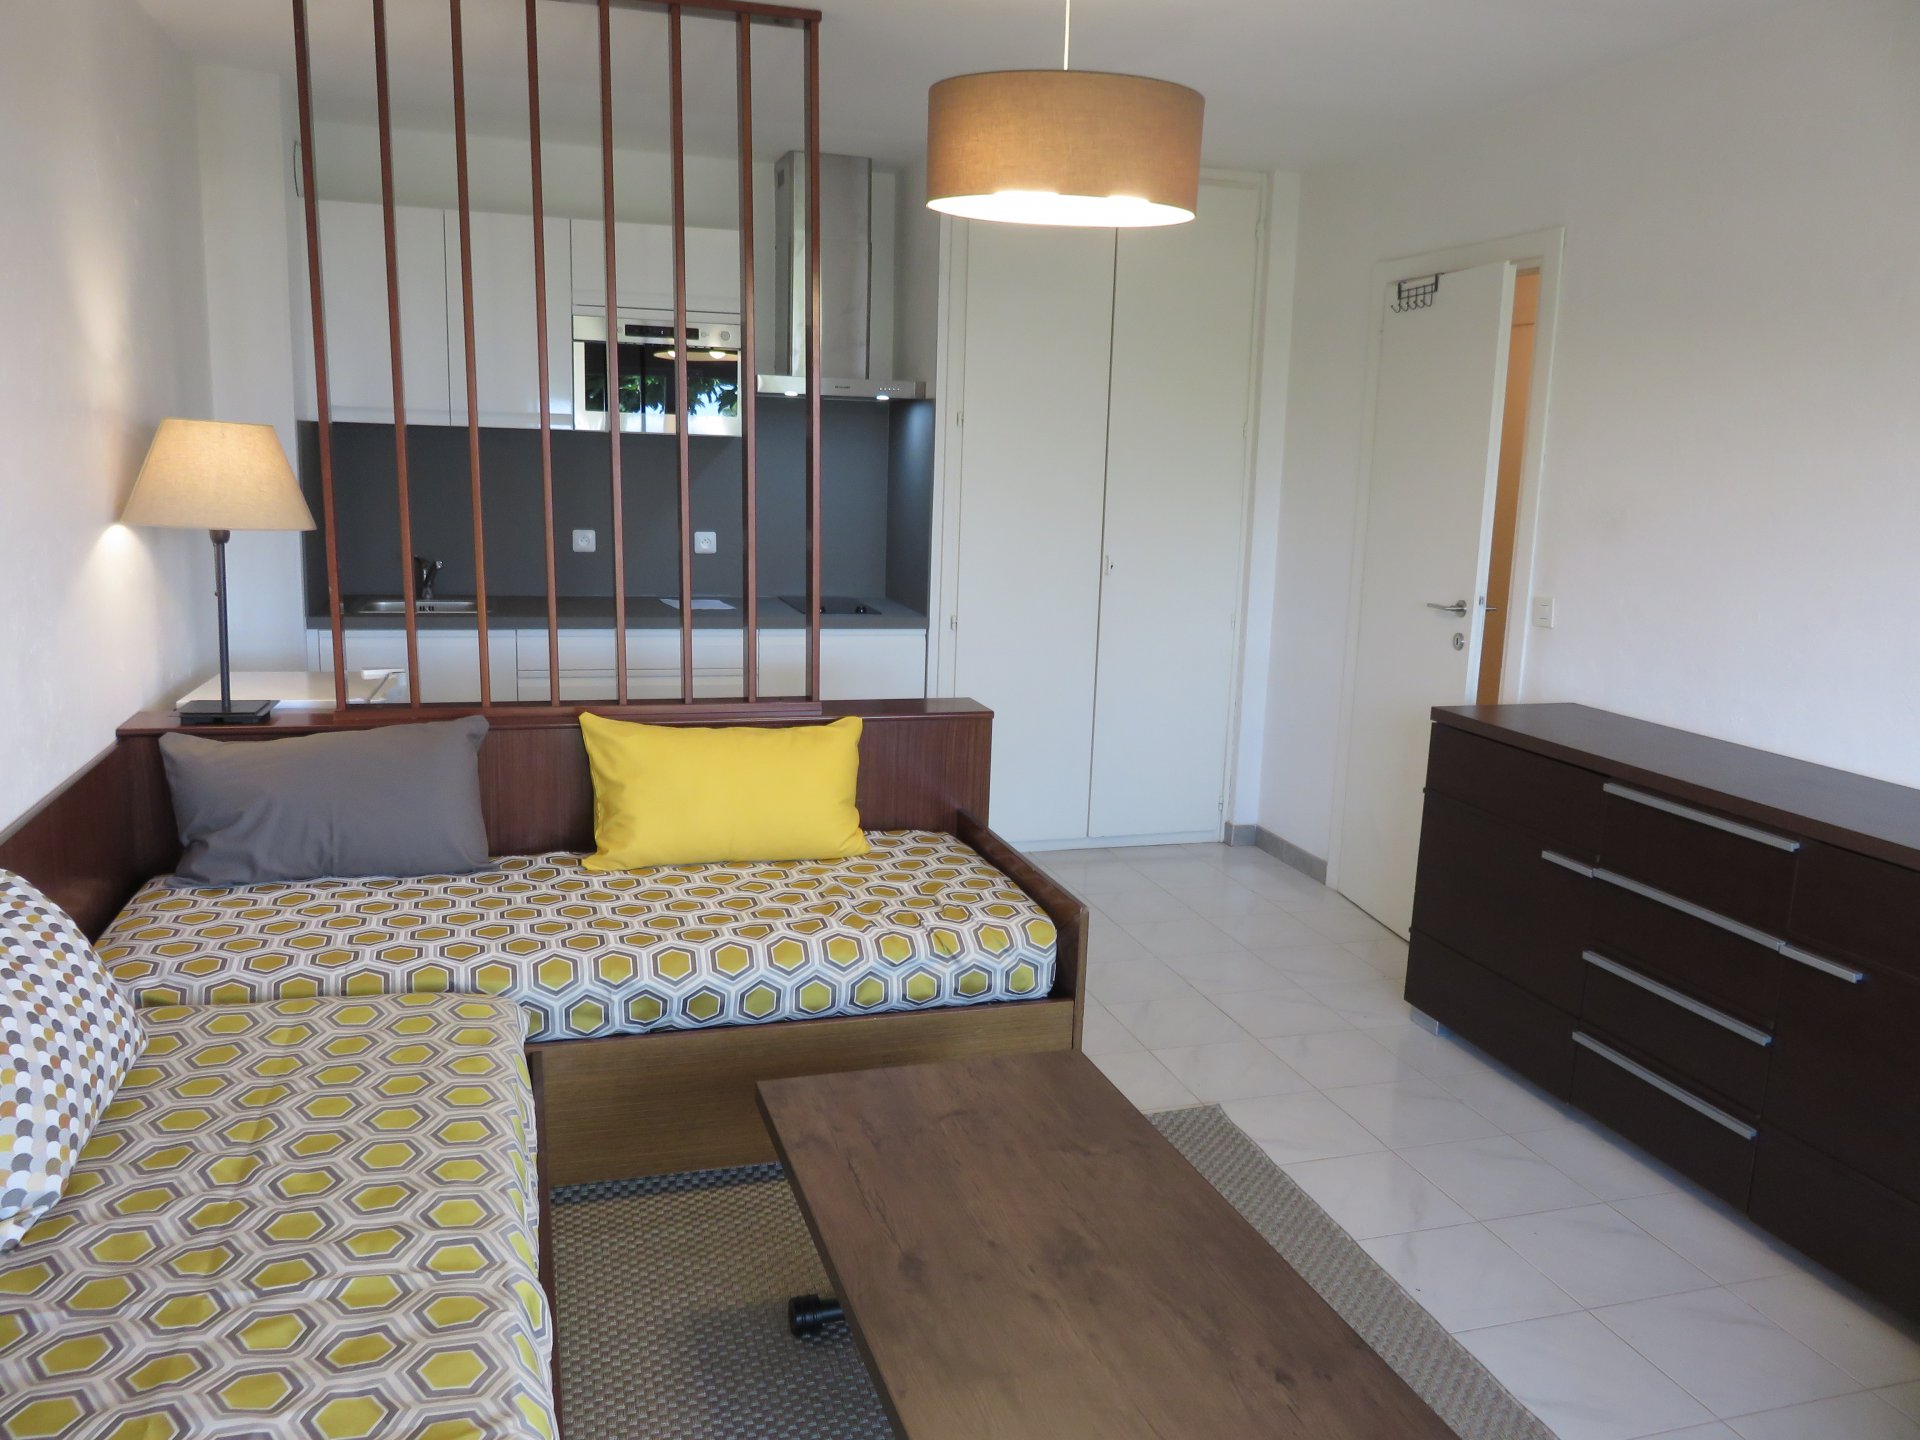 Renovated 2 room apartment with garden